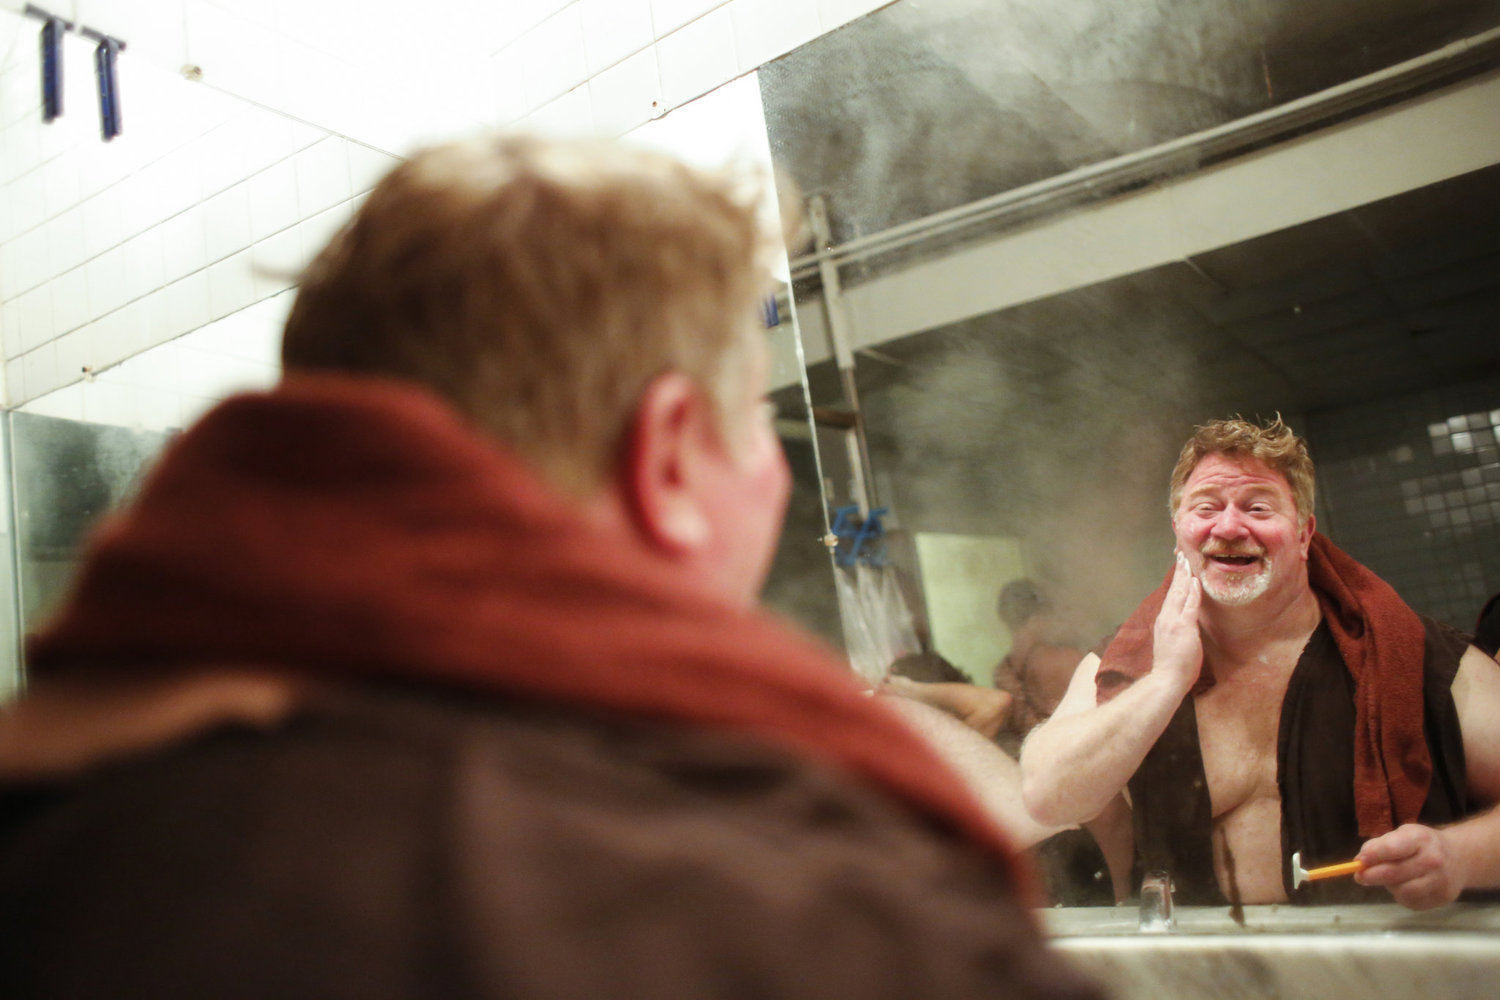 Rich Trince shaves at the bathhouse on a Boris week. Mr. Trince, 50, has been visiting the baths for 20 years.